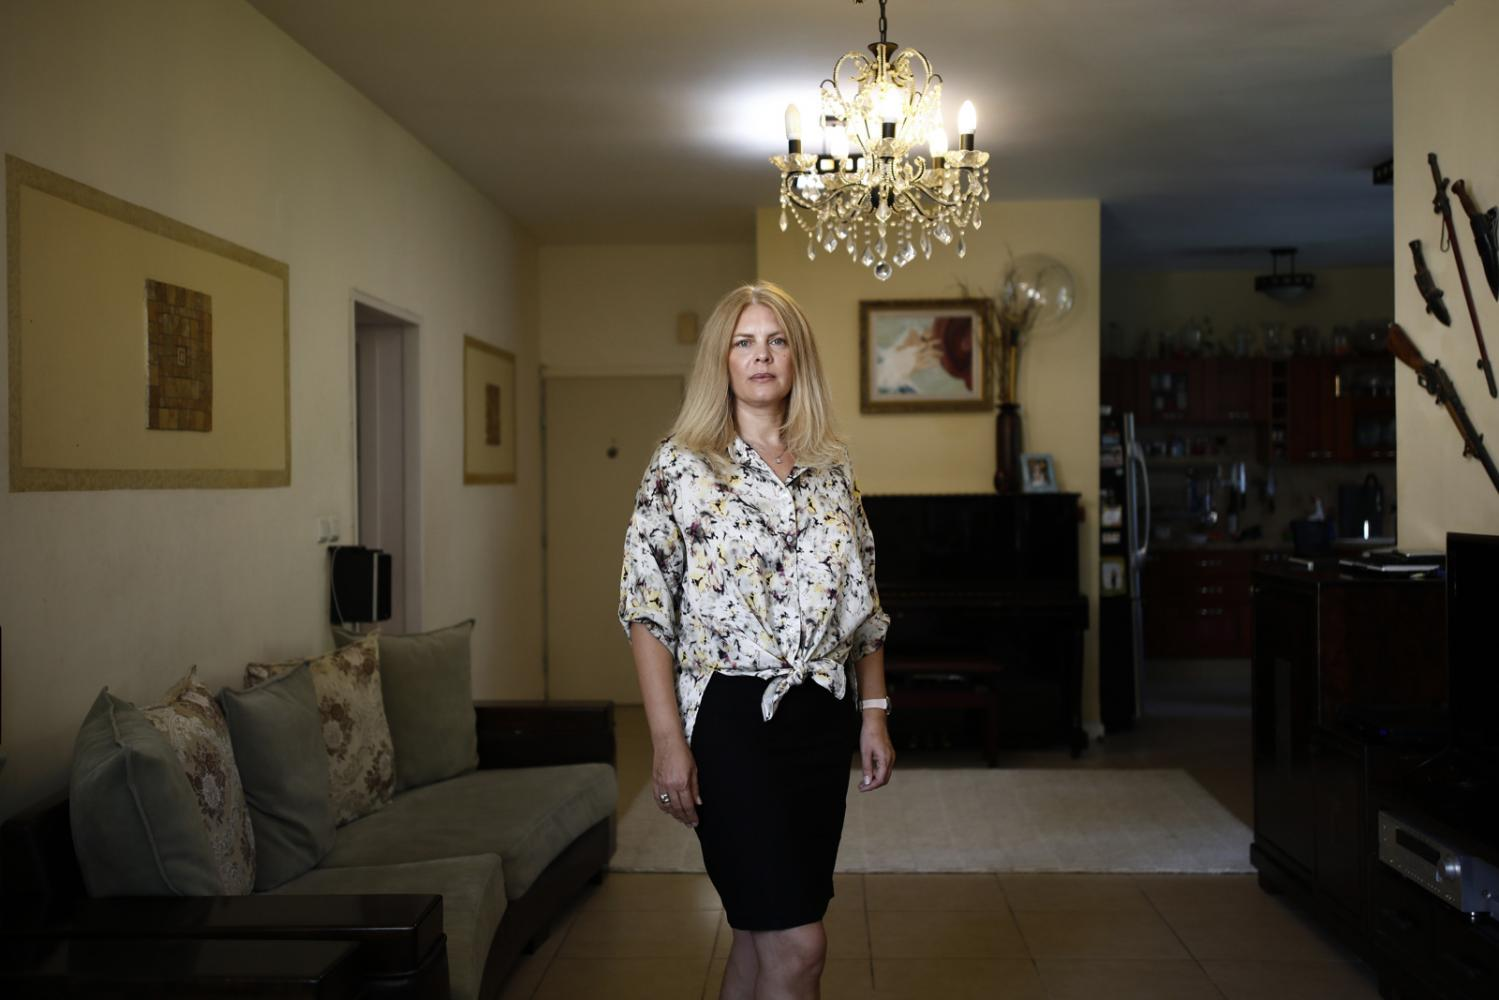 Portrait of Yanna Hodyrker, 46, who immigrated from Ukraine to Israel and was awarded Miss Israel in 1993, in her home in Rehovot, Israel, August 13, 2019.